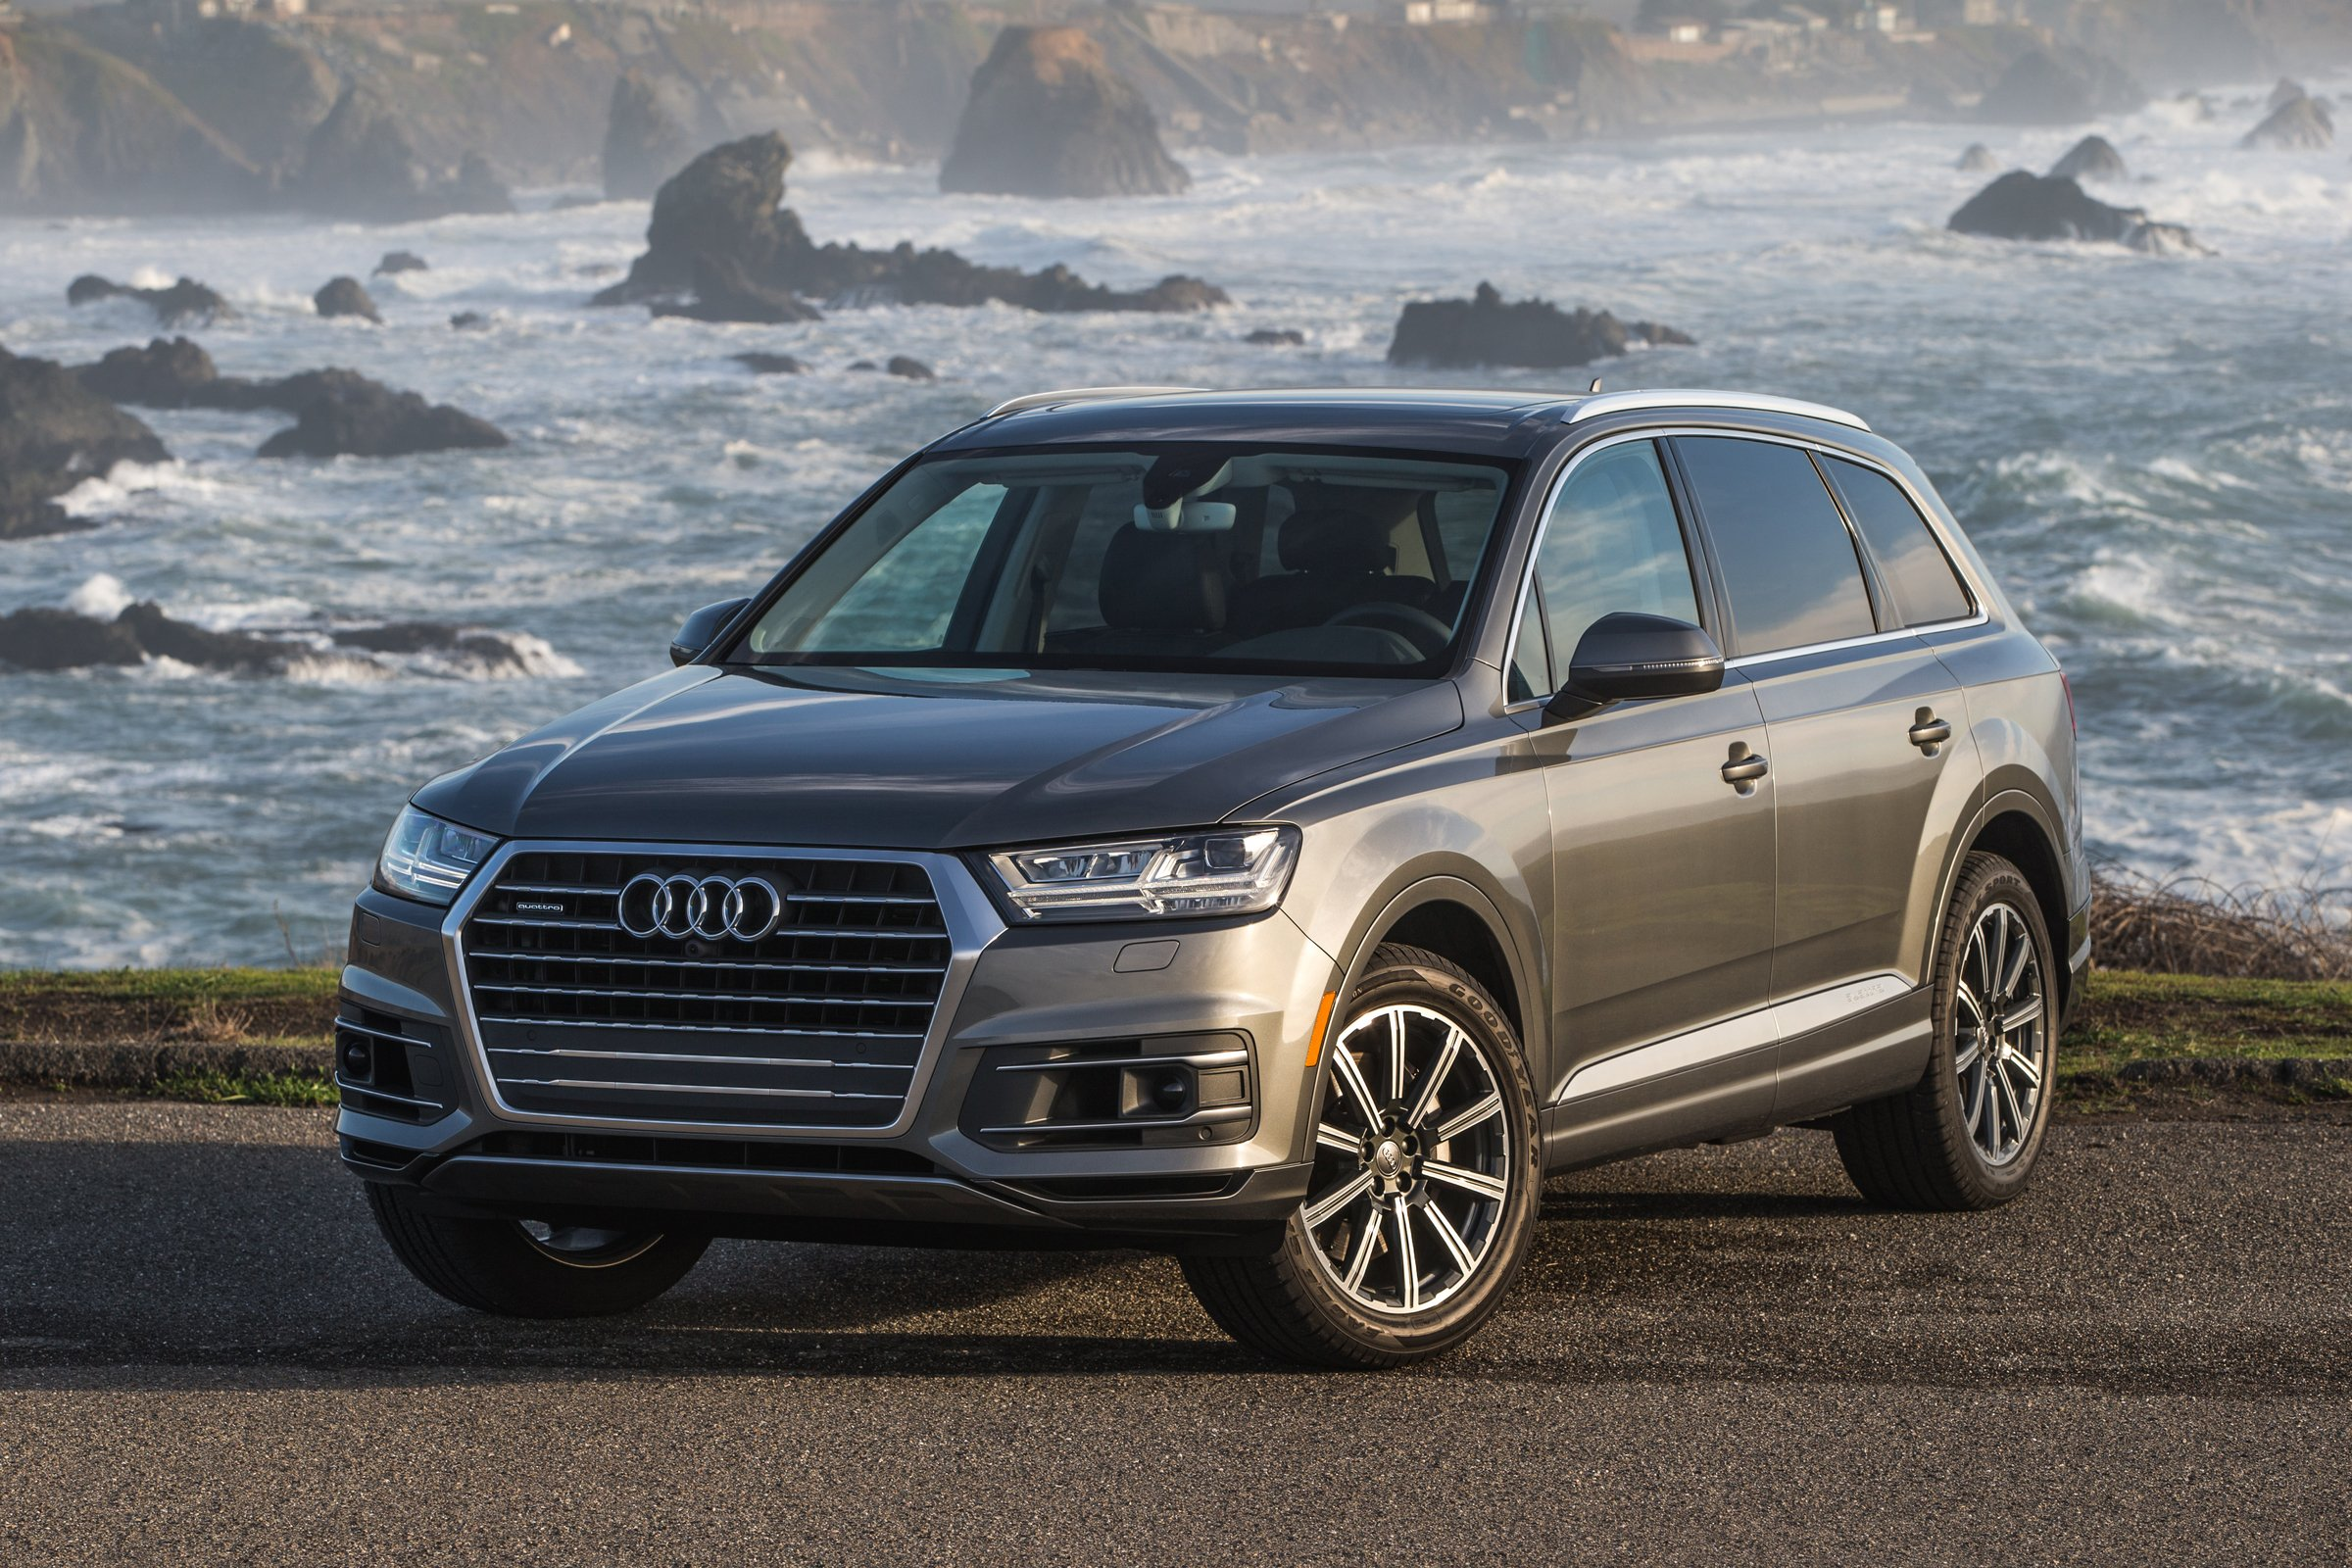 2017 audi q7 now available with 2 0 liter turbo making 252 hp autoevolution. Black Bedroom Furniture Sets. Home Design Ideas